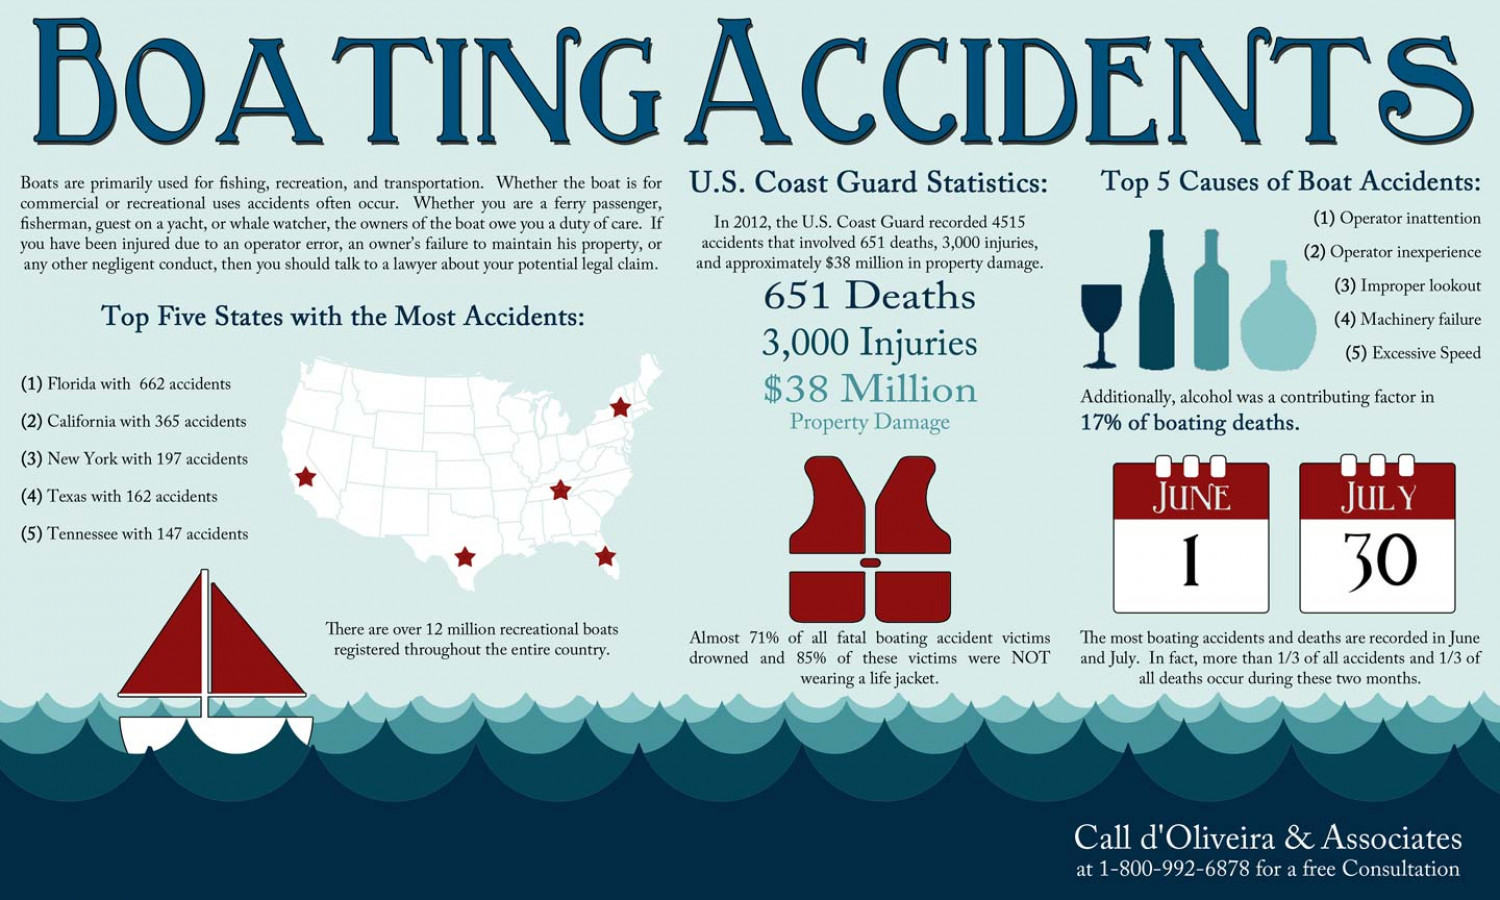 boating accidents Infographic